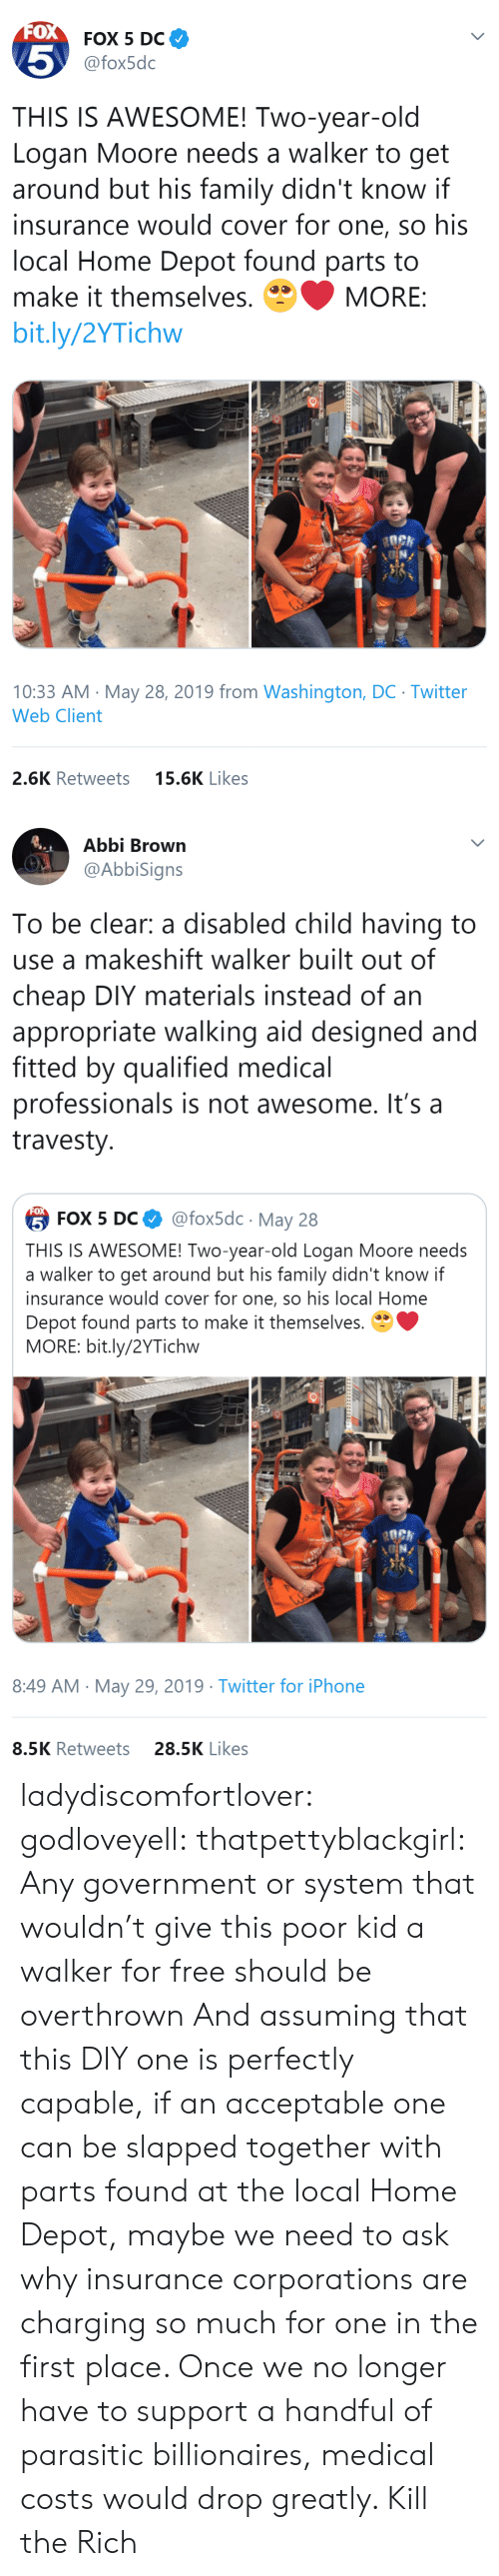 The Rich: FOX  FOX 5 DC  5  @fox5dc  THIS IS AWESOME! Two-year-old  Logan Moore needs a walker to get  around but his family didn't know if  insurance would cover for one, so his  local Home Depot found parts to  make it themselves.  MORE:  bit.ly/2YTichw  10:33 AM May 28, 2019 from Washington, DC Twitter  Web Client  15.6K Likes  2.6K Retweets   Abbi Brown  @AbbiSigns  To be clear: a disabled child having to  use a makeshift walker built out of  cheap DIY materials instead of an  appropriate walking aid designed and  fitted by qualified medical  professionals is not awesome. It's a  travesty  FOX  @fox5dc May 28  5 FOX 5 DС  THIS IS AWESOME! Two-year-old Logan Moore needs  a walker to get around but his family didn't know if  insurance would cover for one, so his local Home  Depot found parts to make it themselves.  MORE: bit.ly/2YTichw  8:49 AM May 29, 2019 Twitter for iPhone  28.5K Likes  8.5K Retweets ladydiscomfortlover: godloveyell:  thatpettyblackgirl:  Any government or system that wouldn't give this poor kid a walker for free should be overthrown   And assuming that this DIY one is perfectly capable, if an acceptable one can be slapped together with parts found at the local Home Depot, maybe we need to ask why insurance corporations are charging so much for one in the first place.  Once we no longer have to support a handful of parasitic billionaires, medical costs would drop greatly.    Kill the Rich